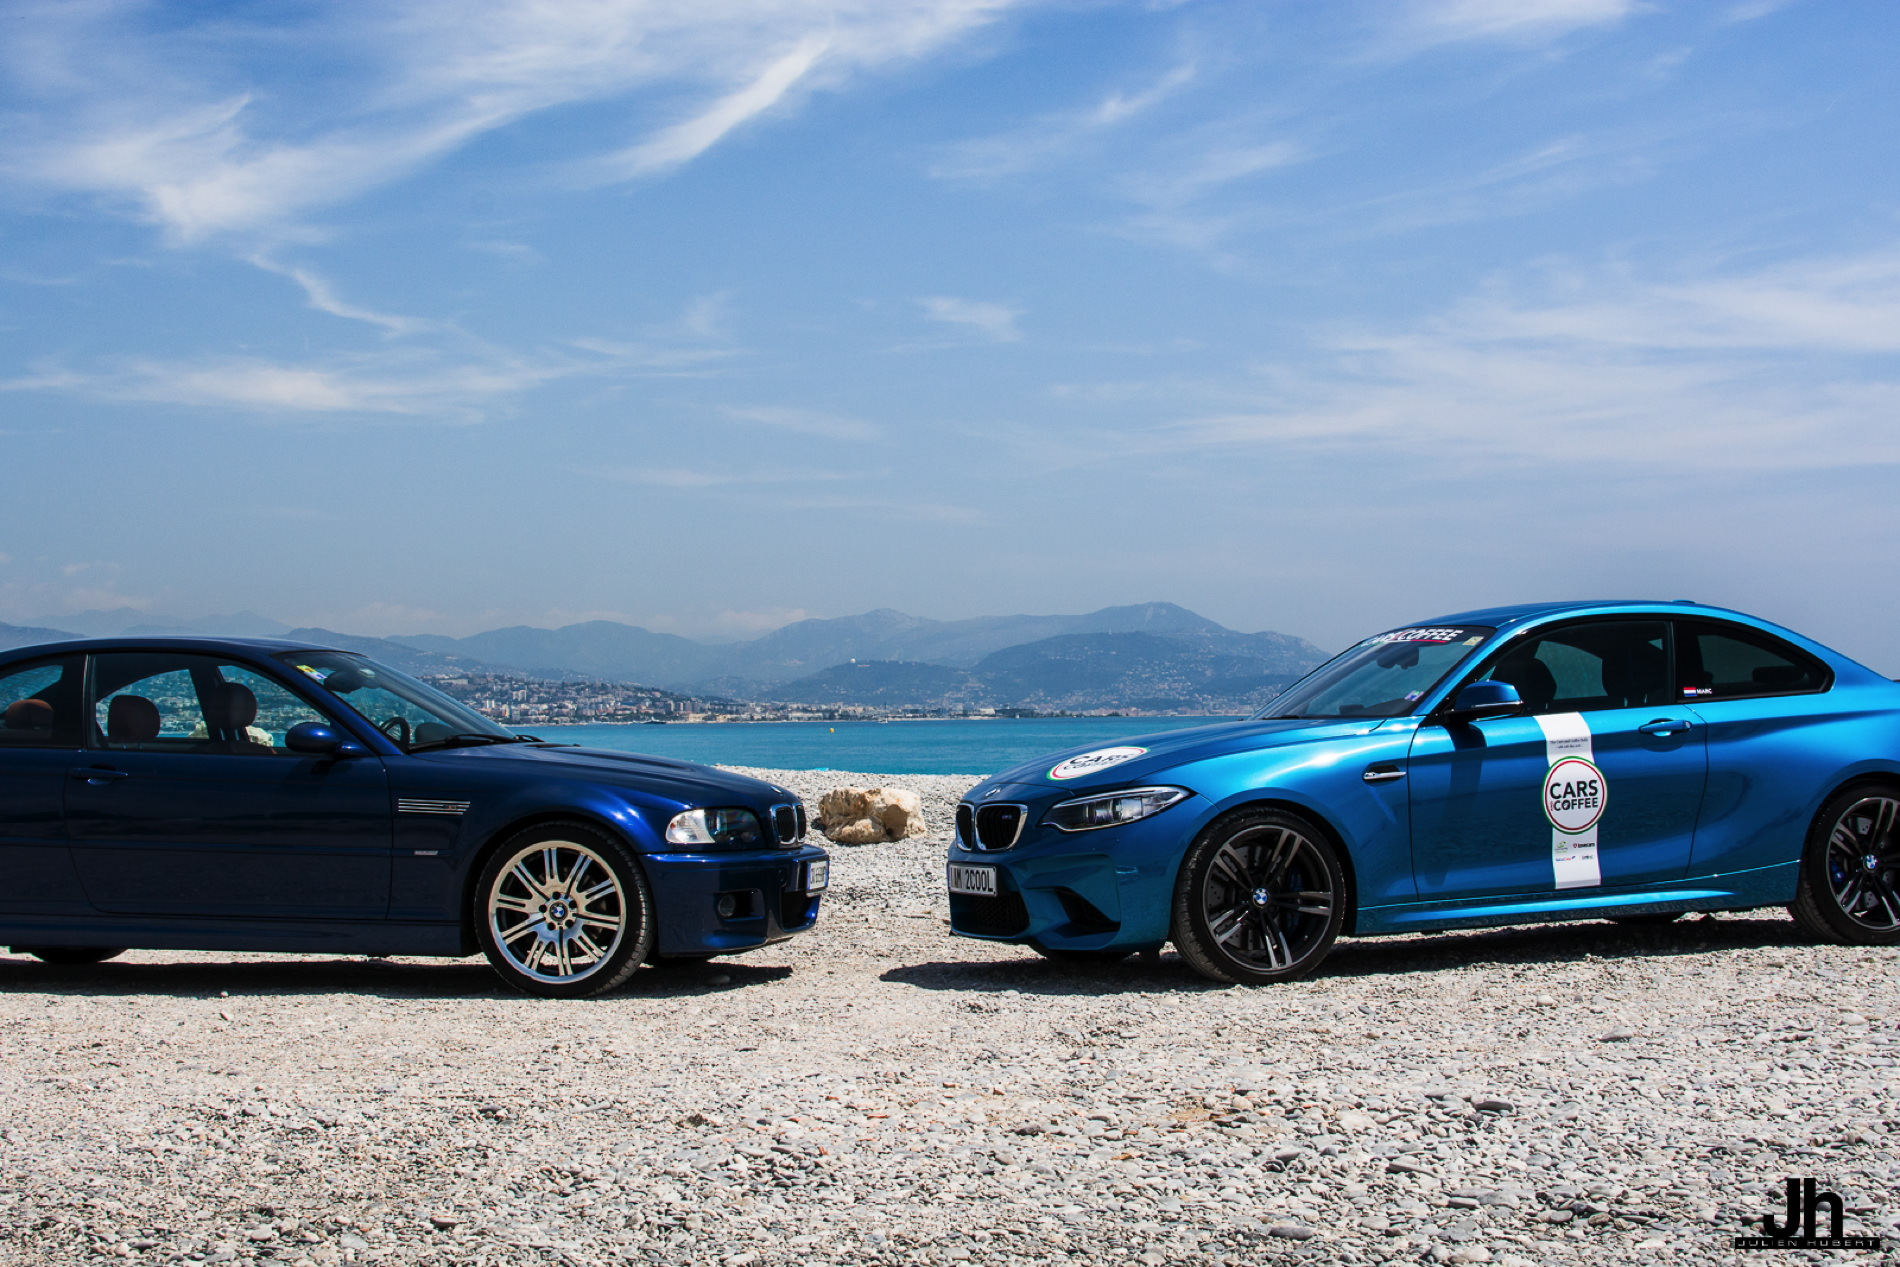 Bmw M3 0 60 >> Photoshoot: E46 M3 and BMW M2